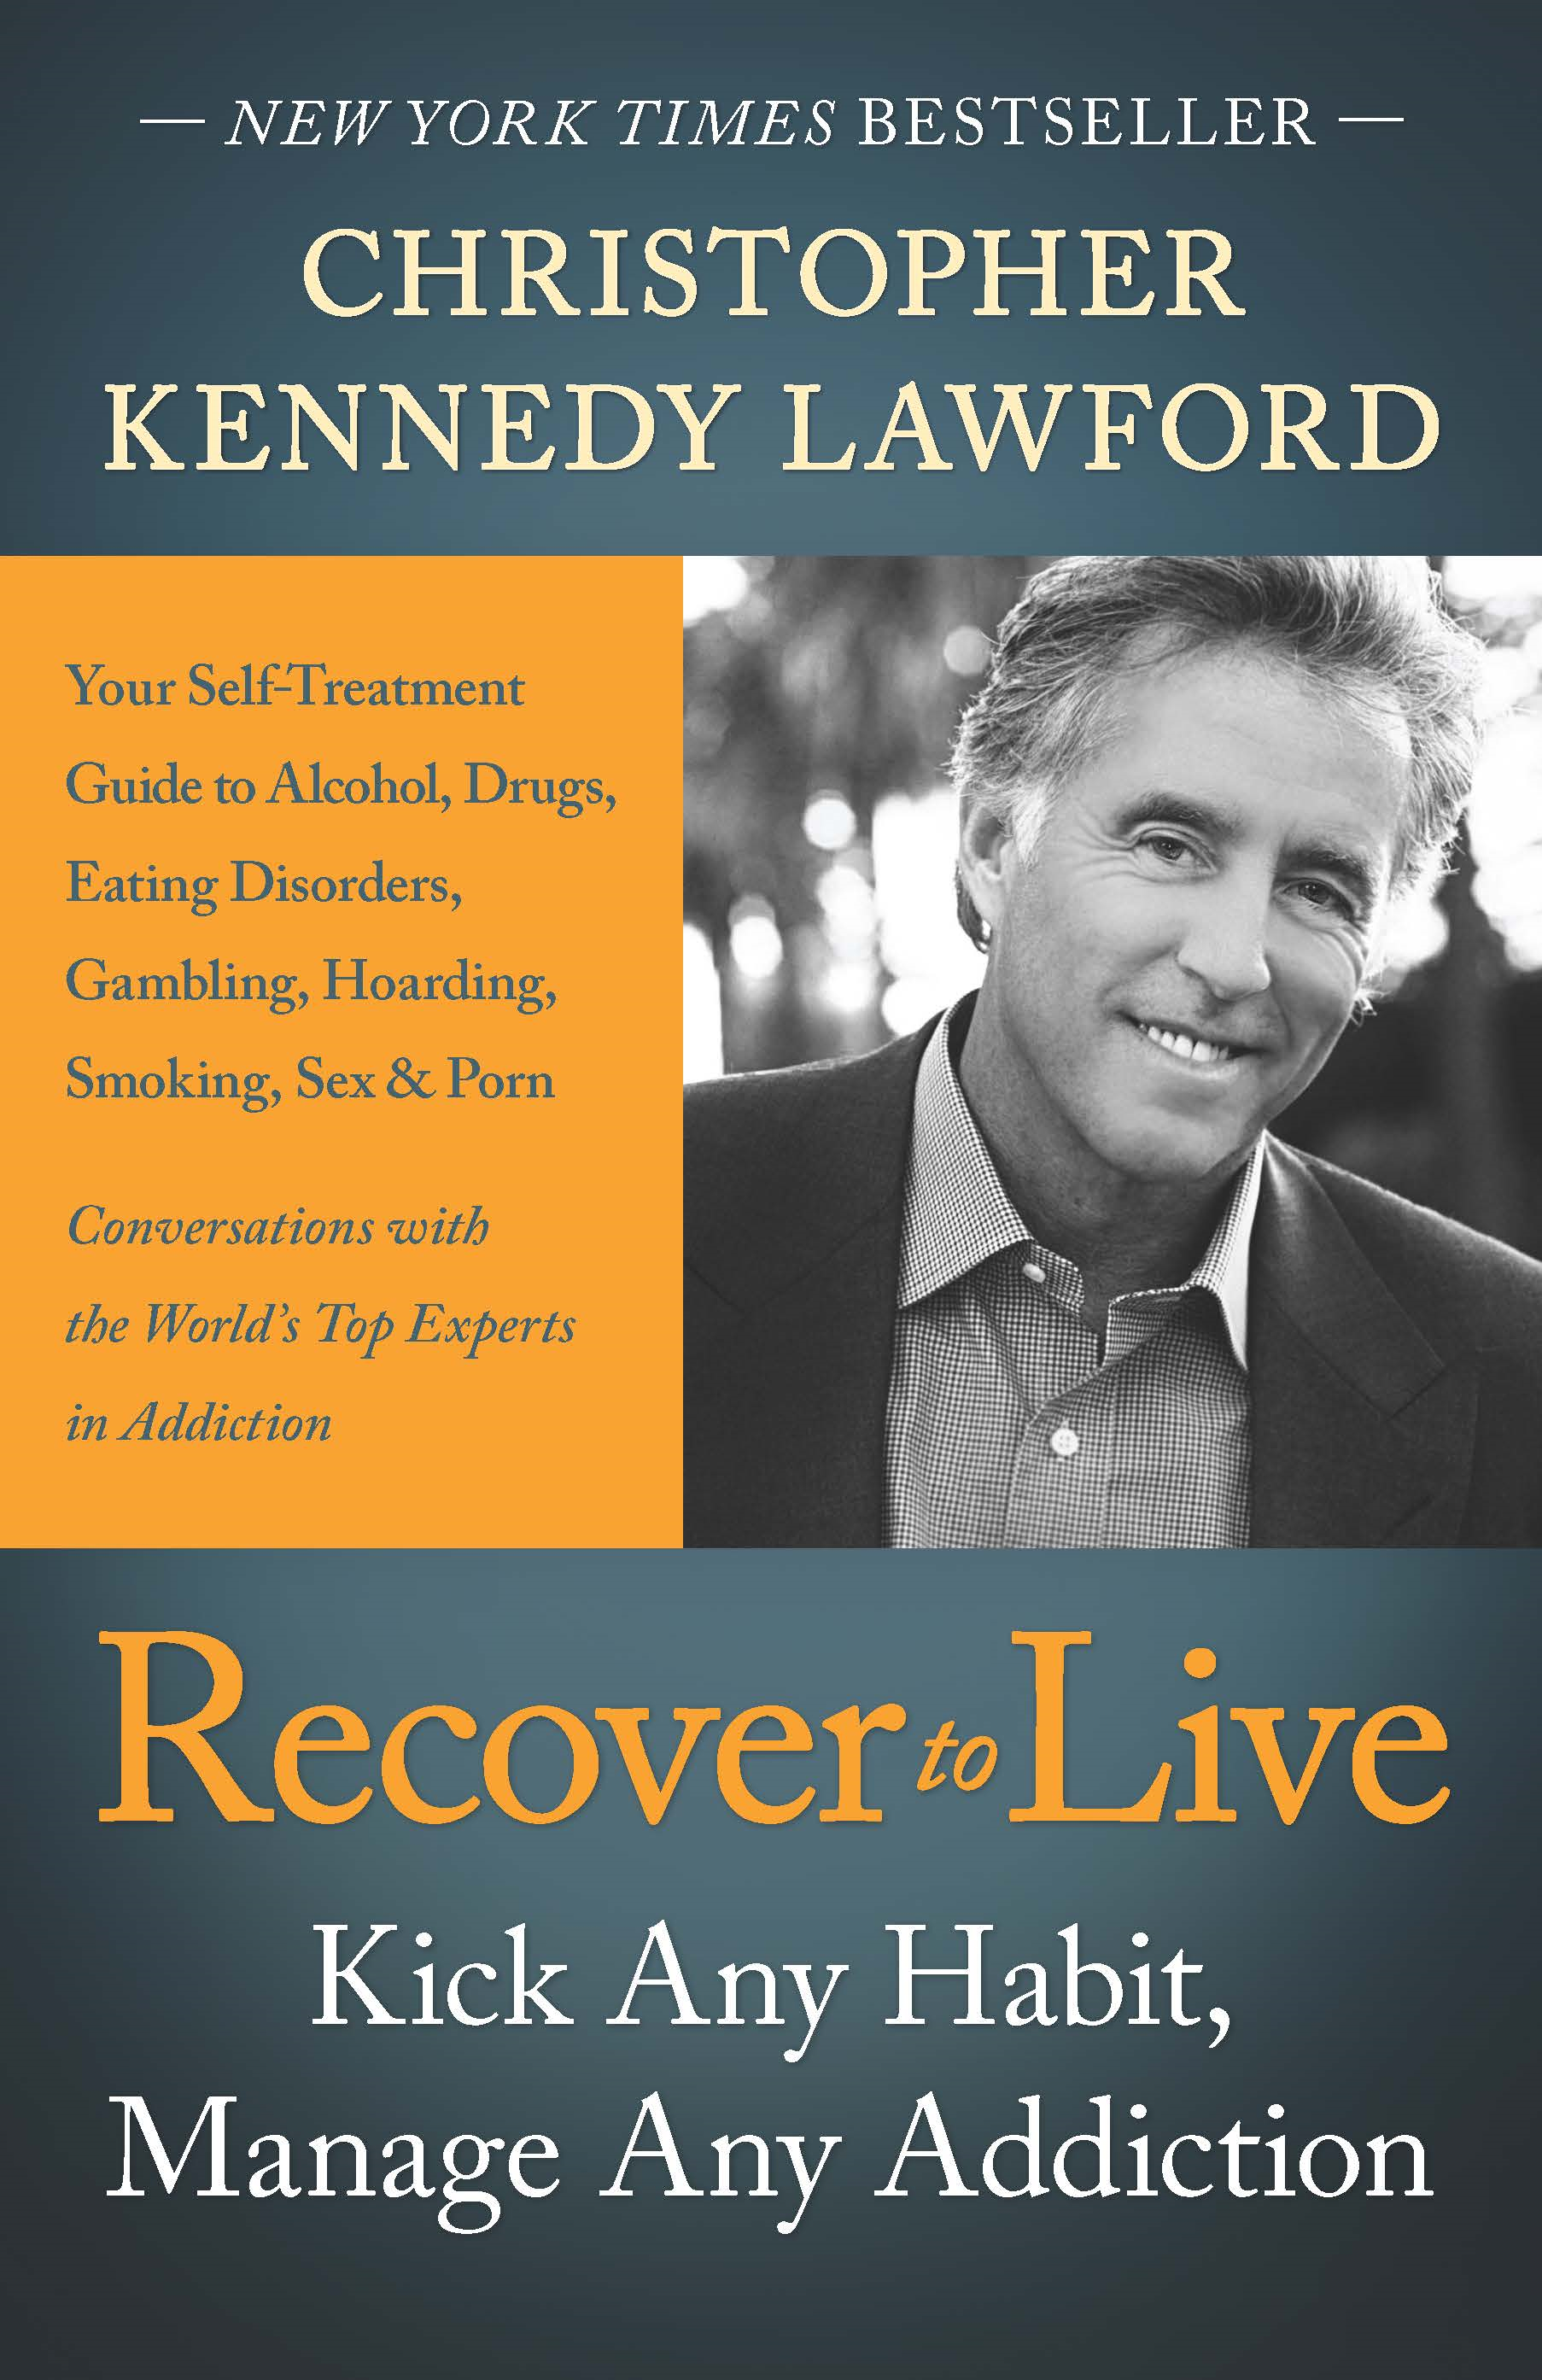 Recover to Live: Kick Any Habit, Manage Any Addiction: Your Self-Treatment Guide to Alcohol, Drugs, Eating Disorders, By: Christopher Kennedy Lawford